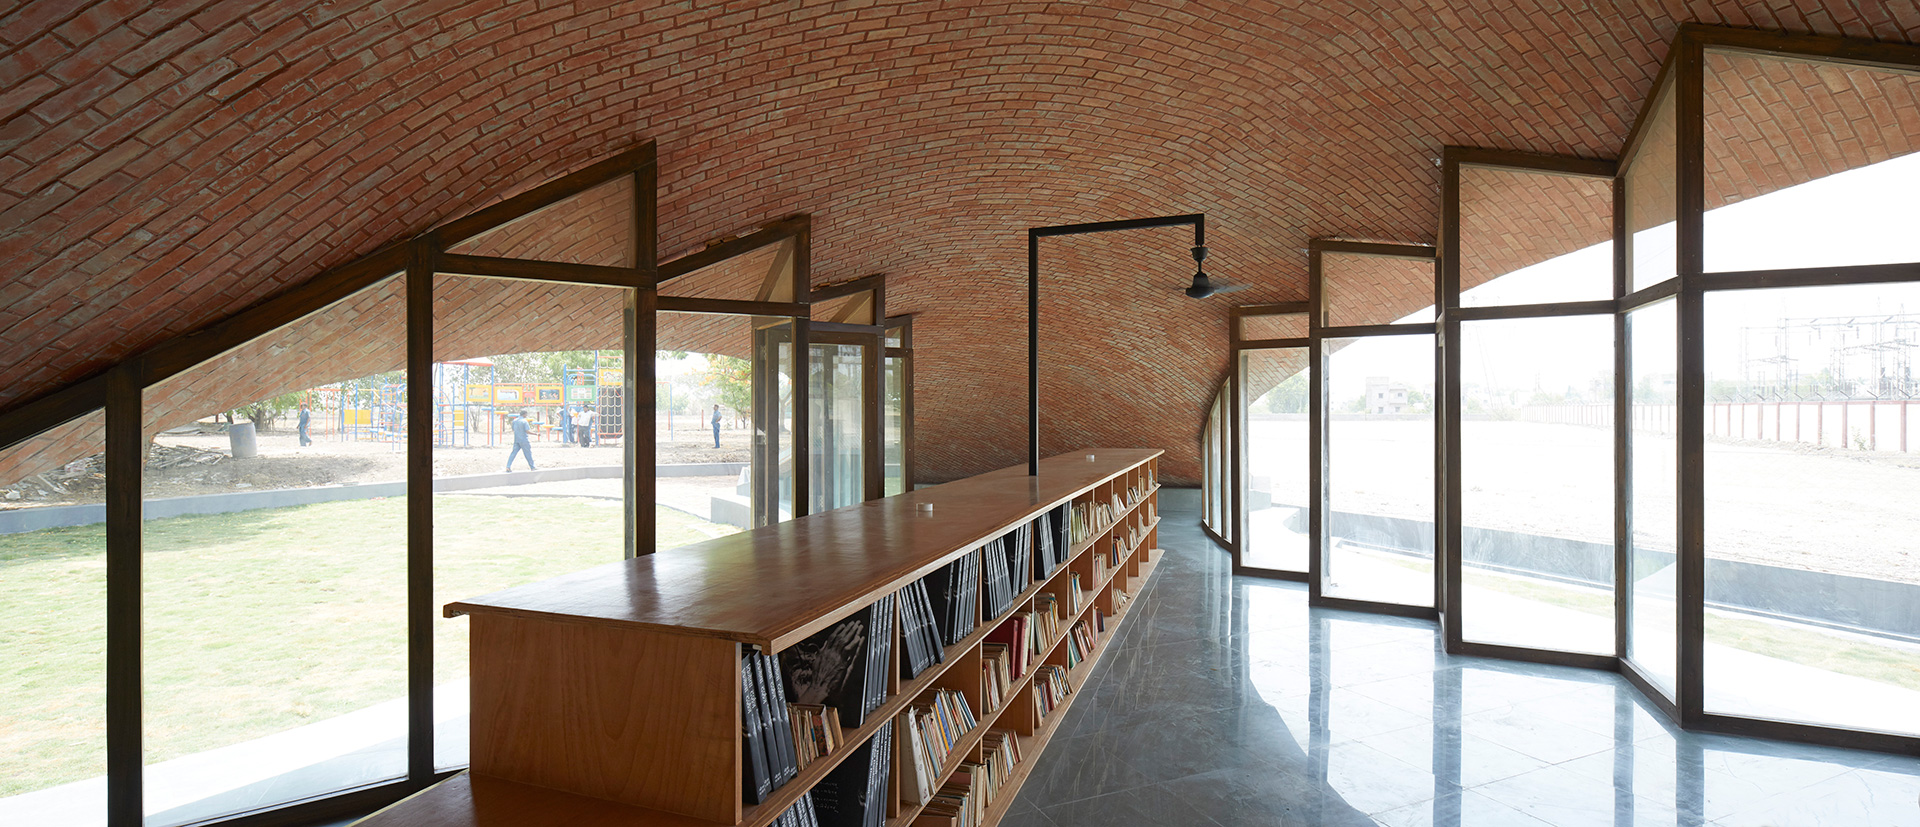 Movable furniture | Maya Somaiya Library | sP+a | STIRworld